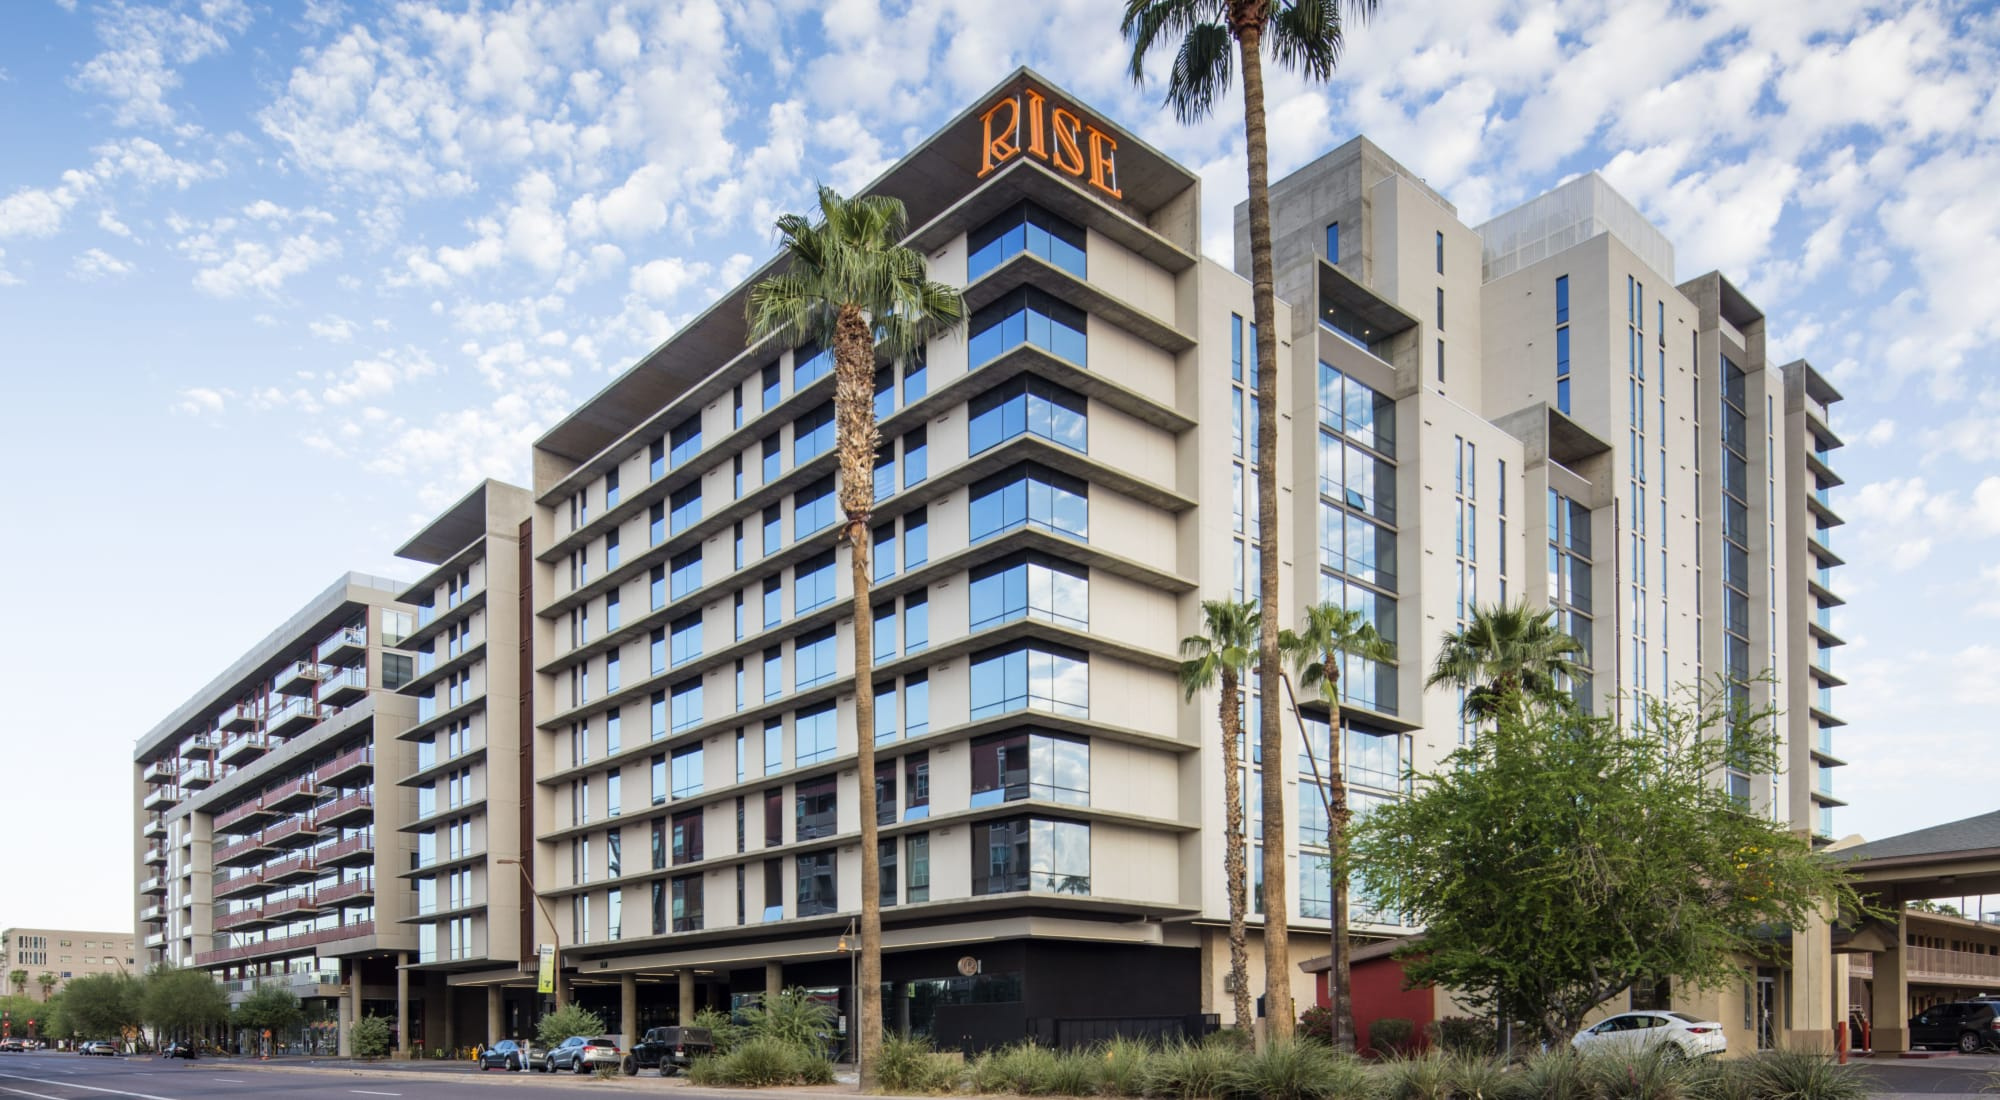 Apartments at RISE on Apache in Tempe, Arizona